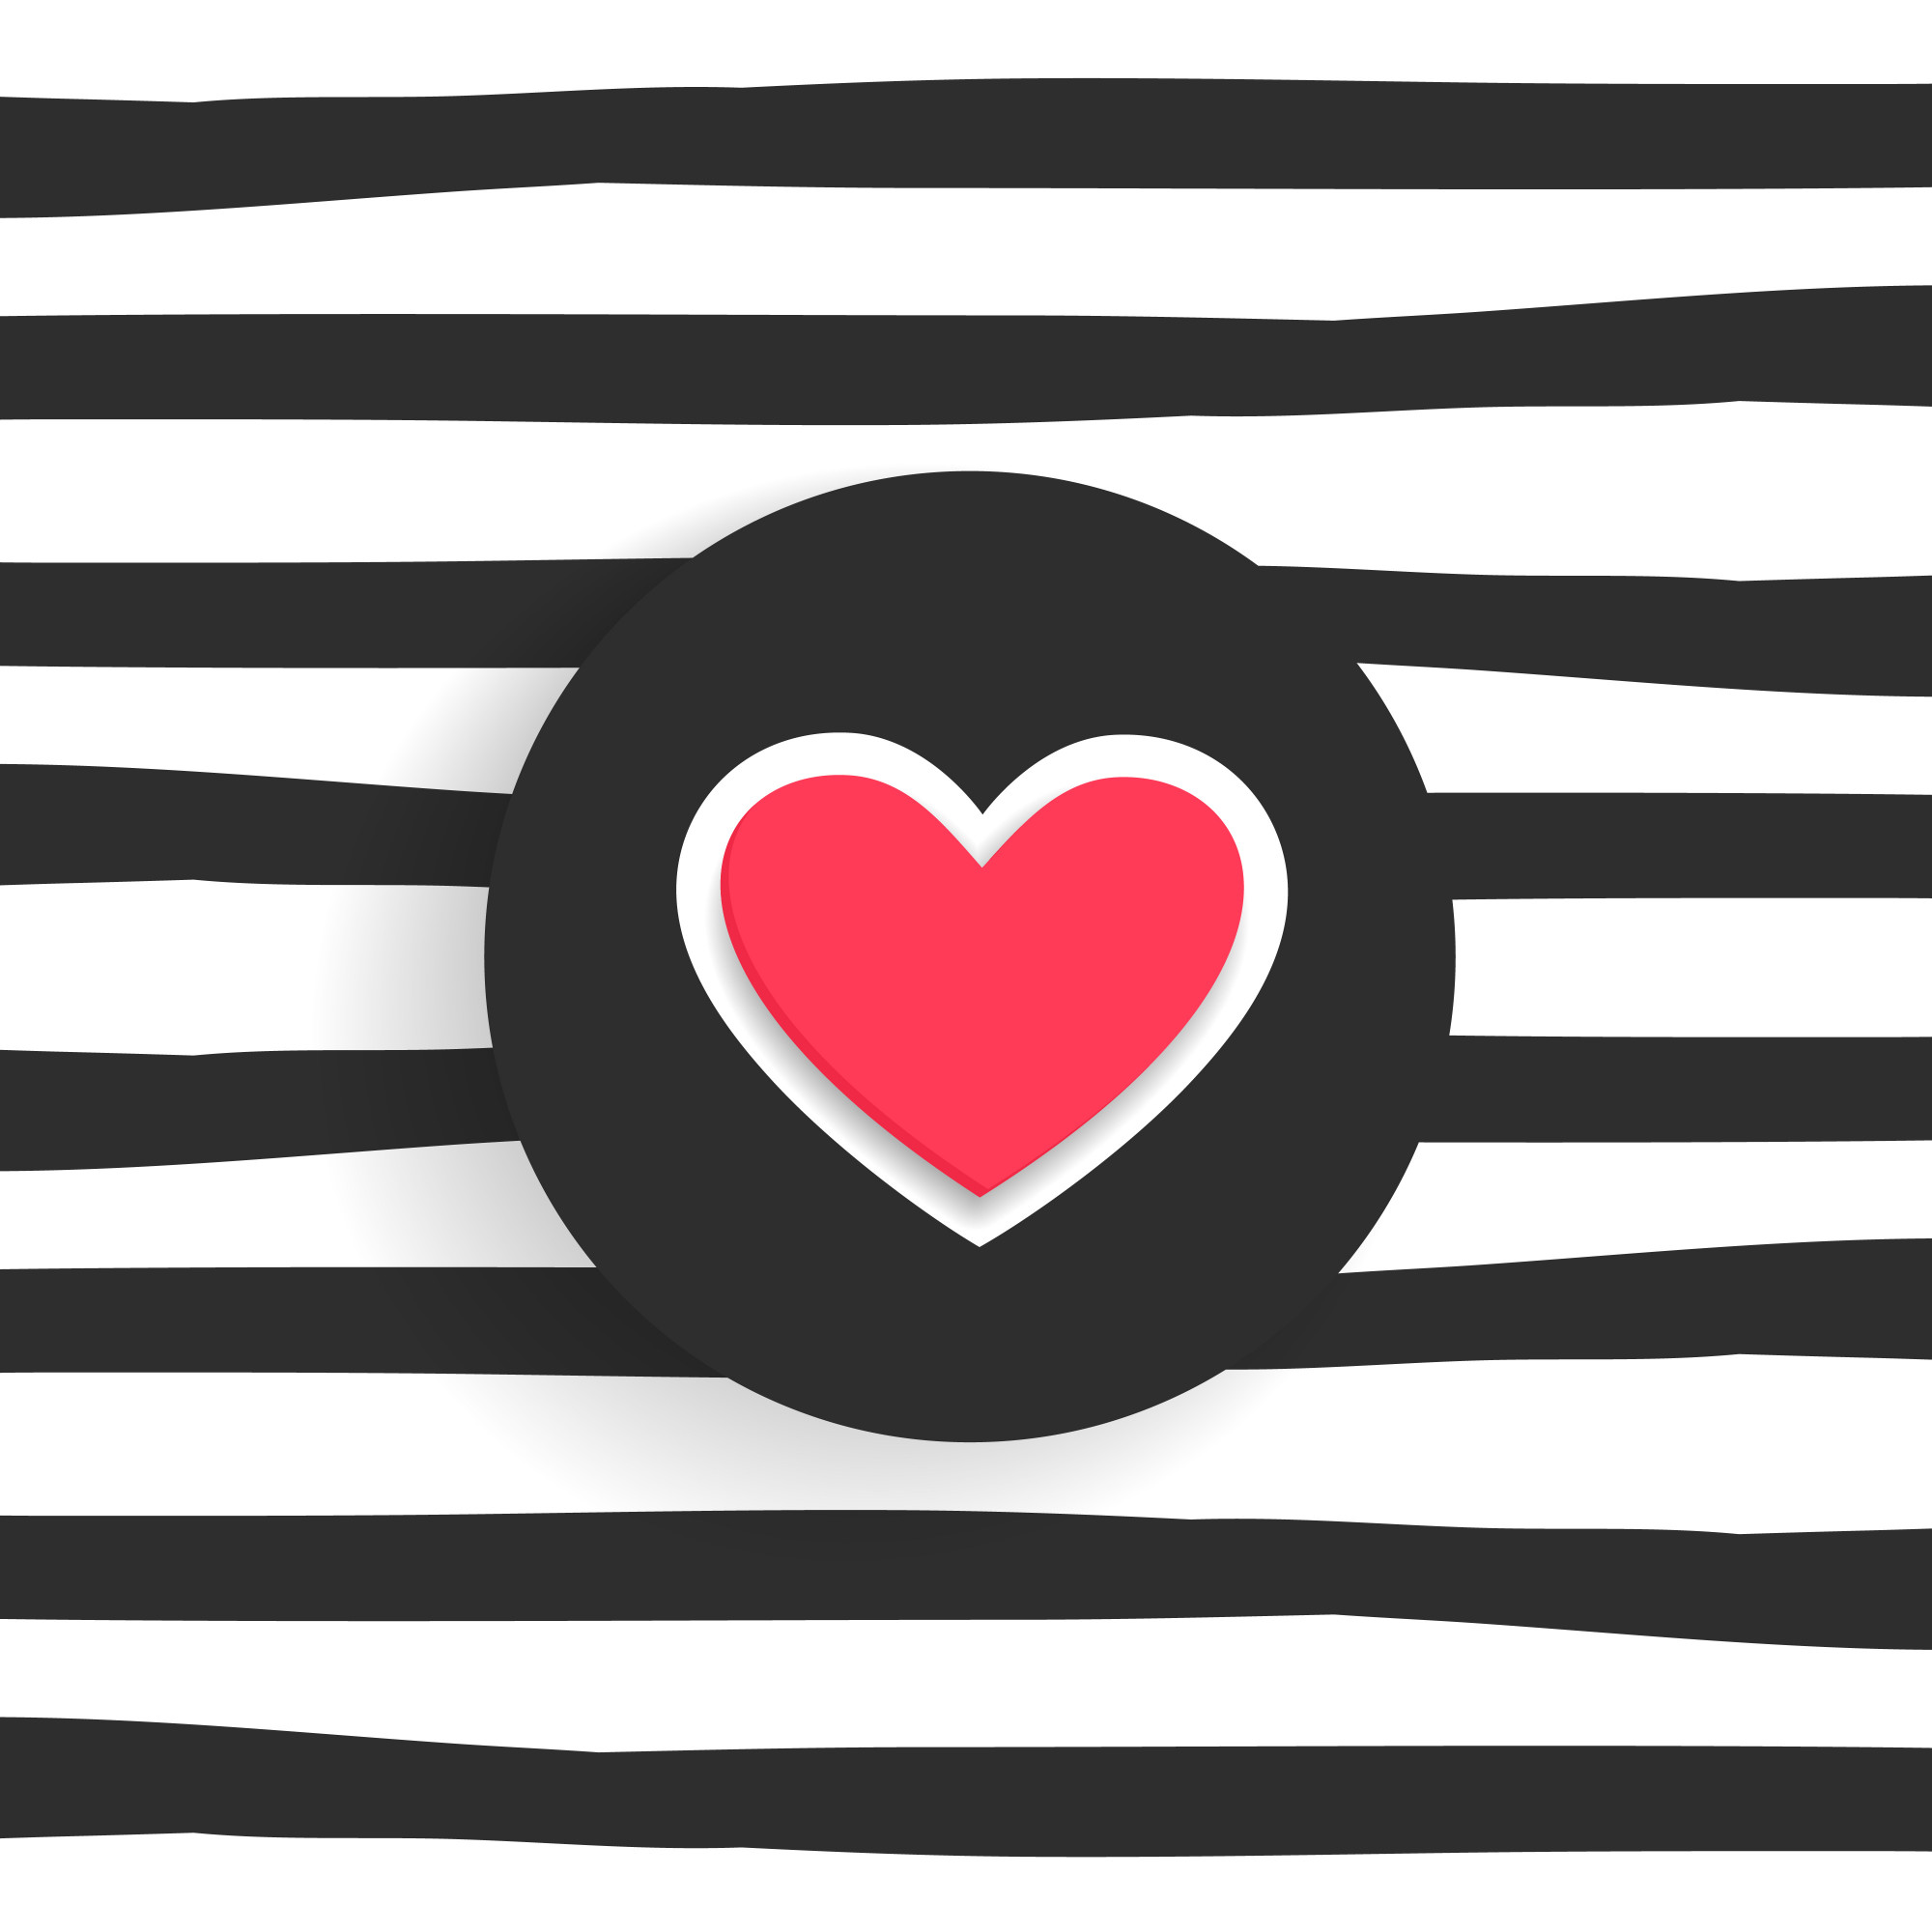 Trendy background with heart shape